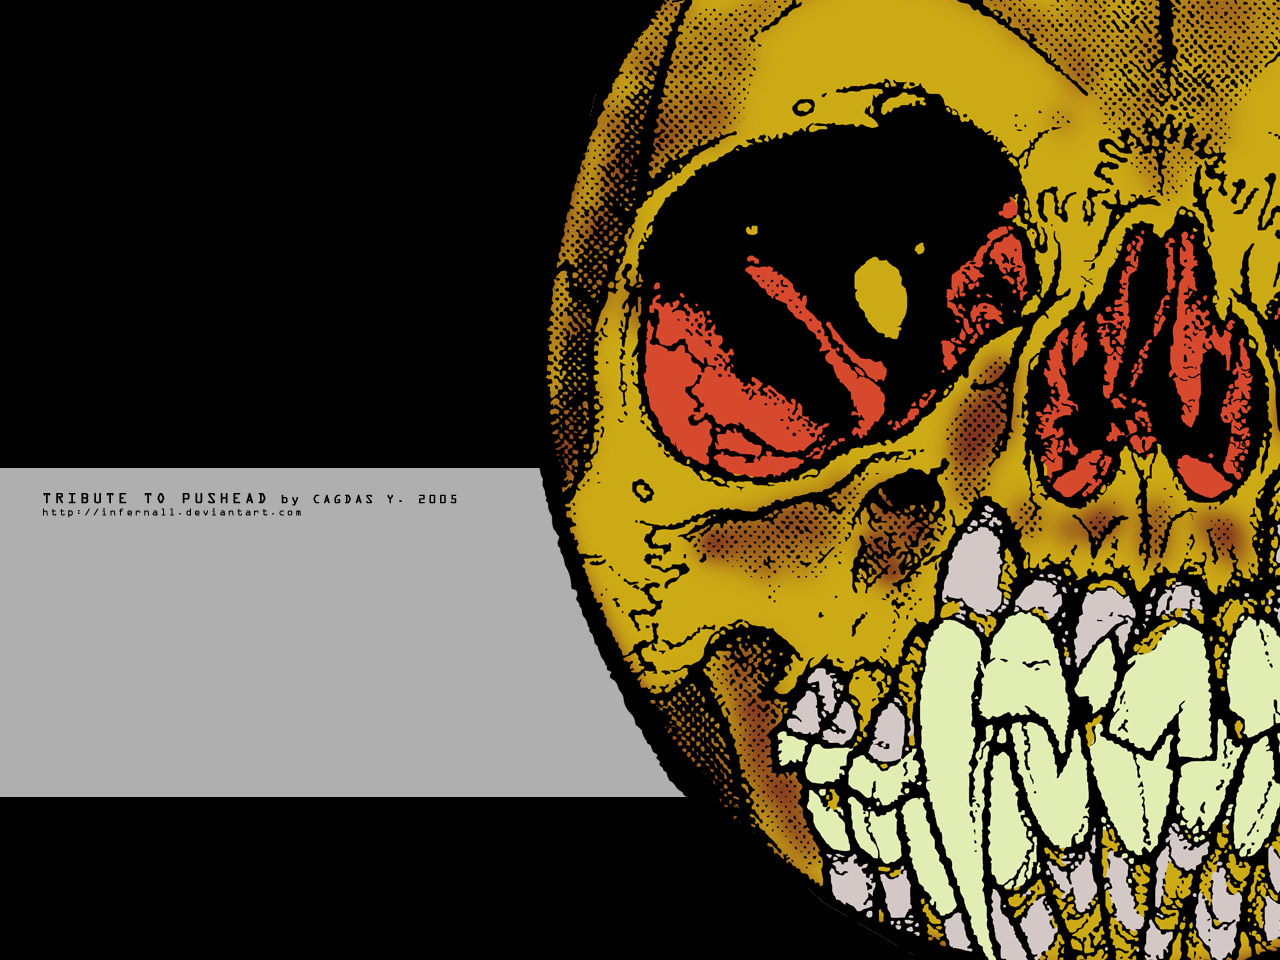 flaming skull wallpaper no 4 by cagdasyoldas customization wallpaper 1280x960